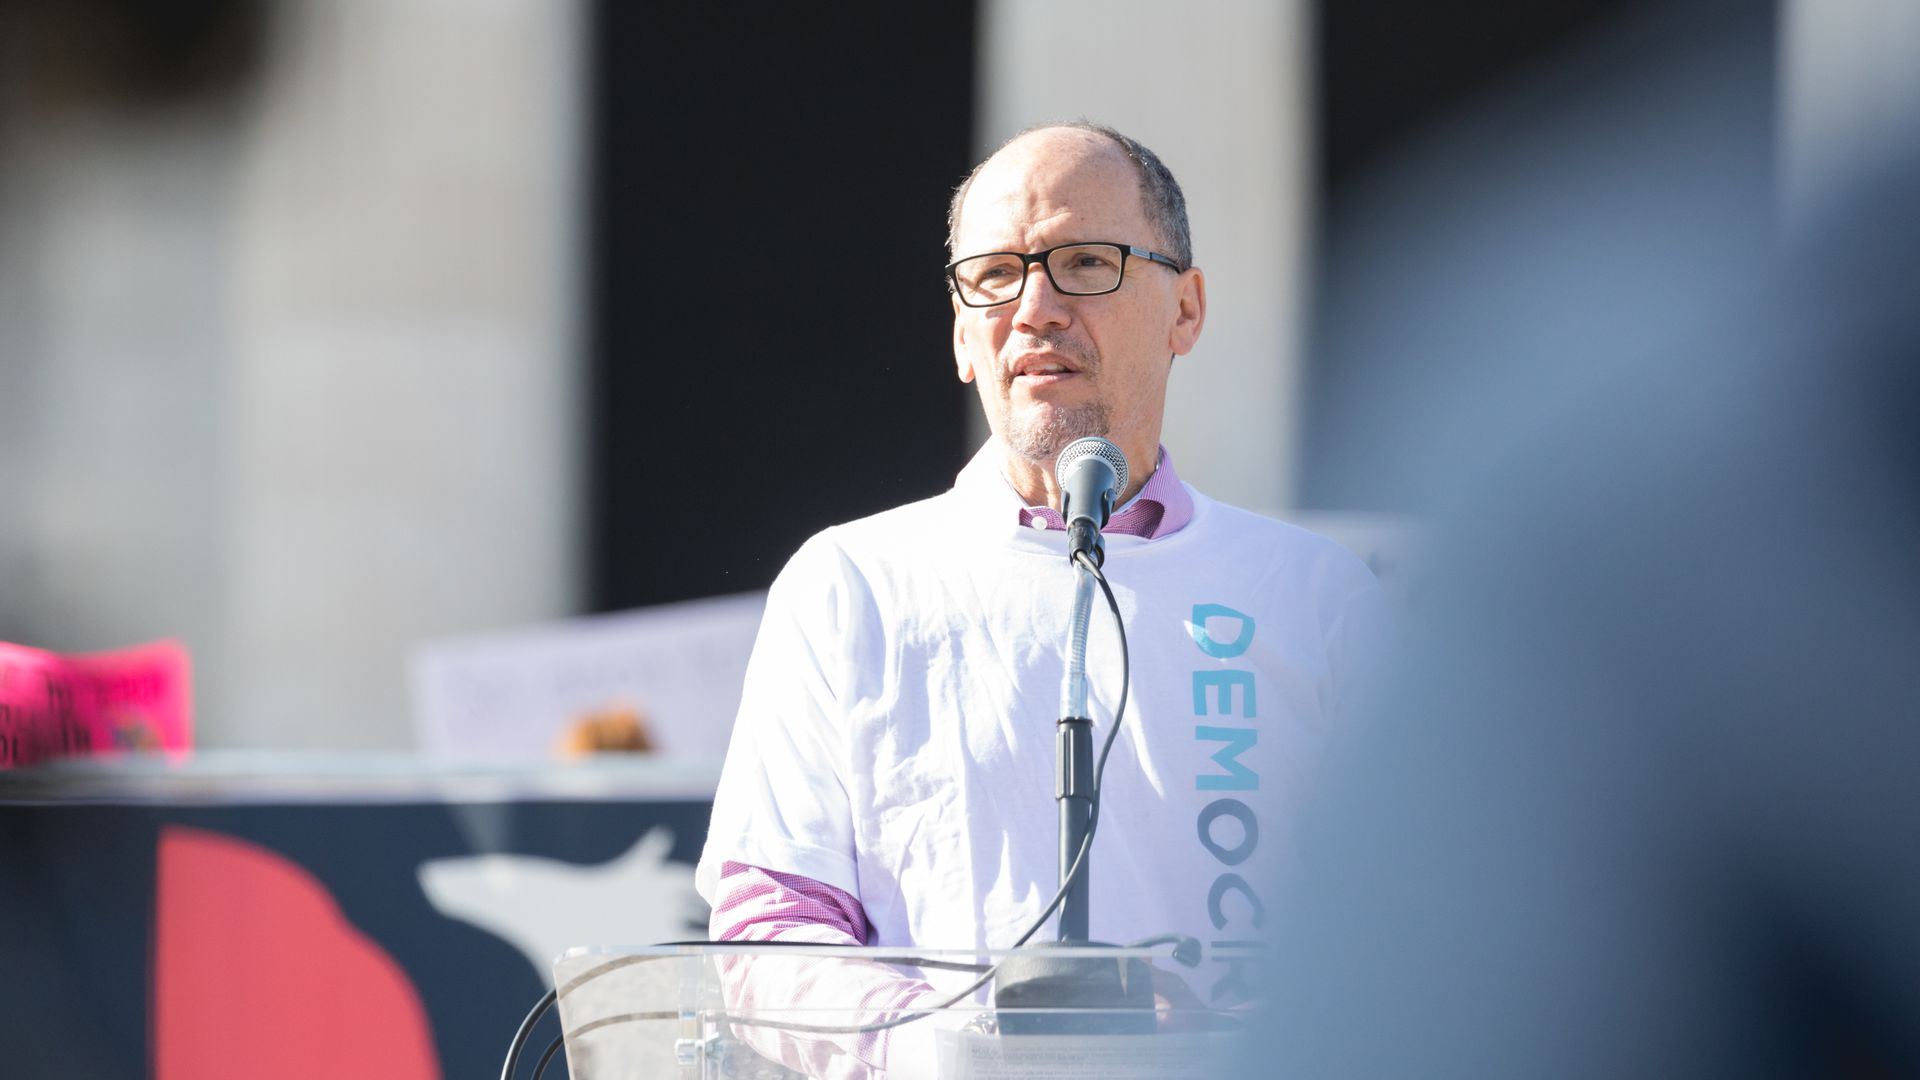 Tom Perez speaks at a microphone.